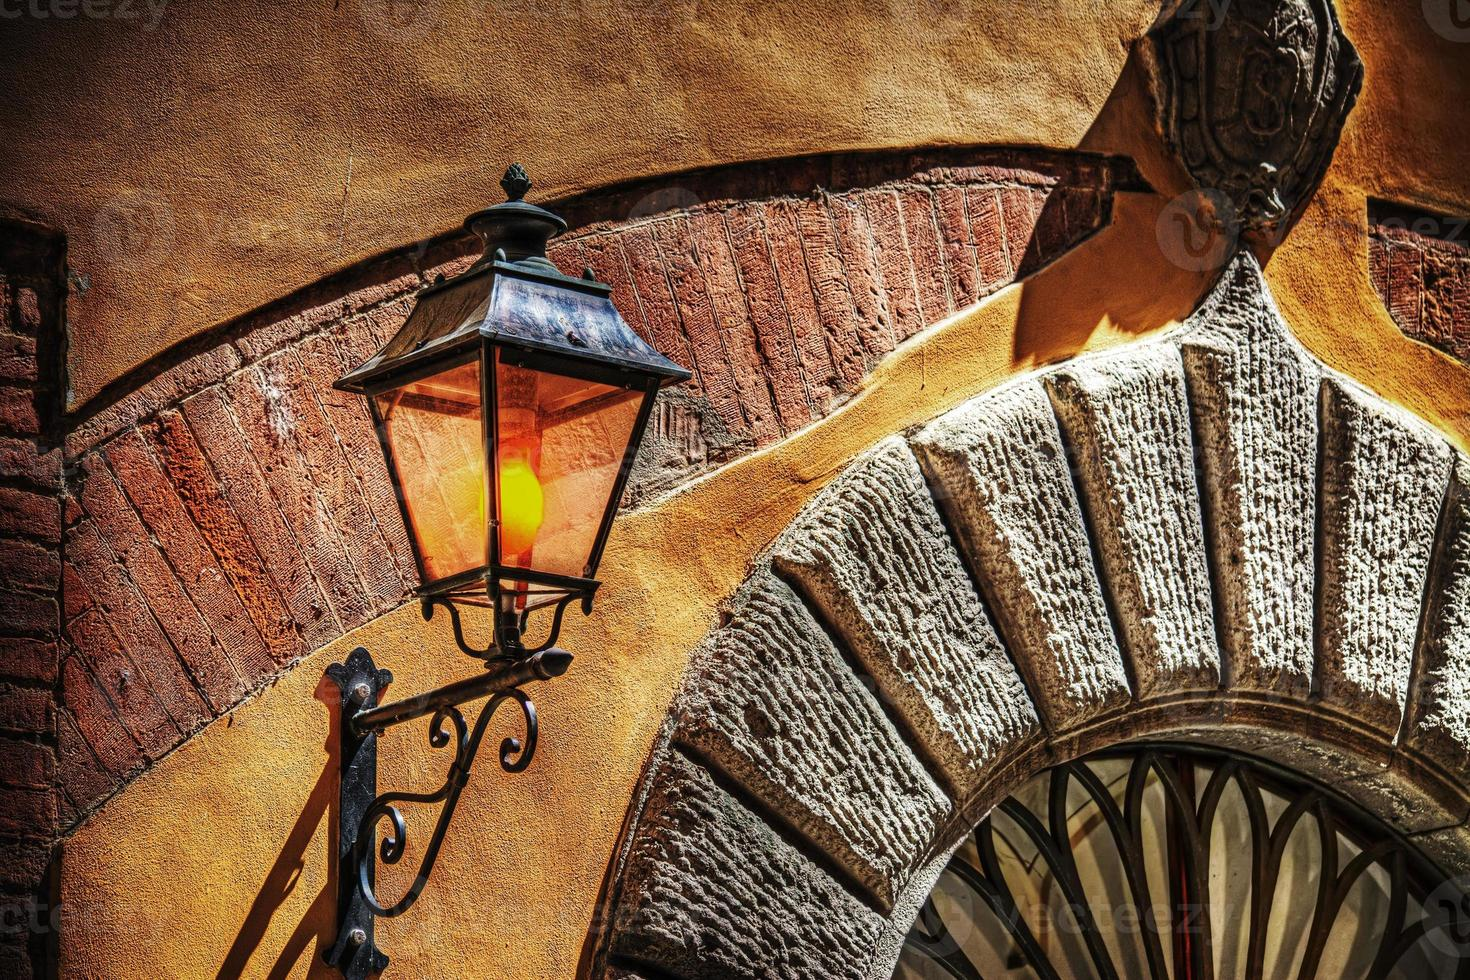 rustic light in a typical Italian entrance photo